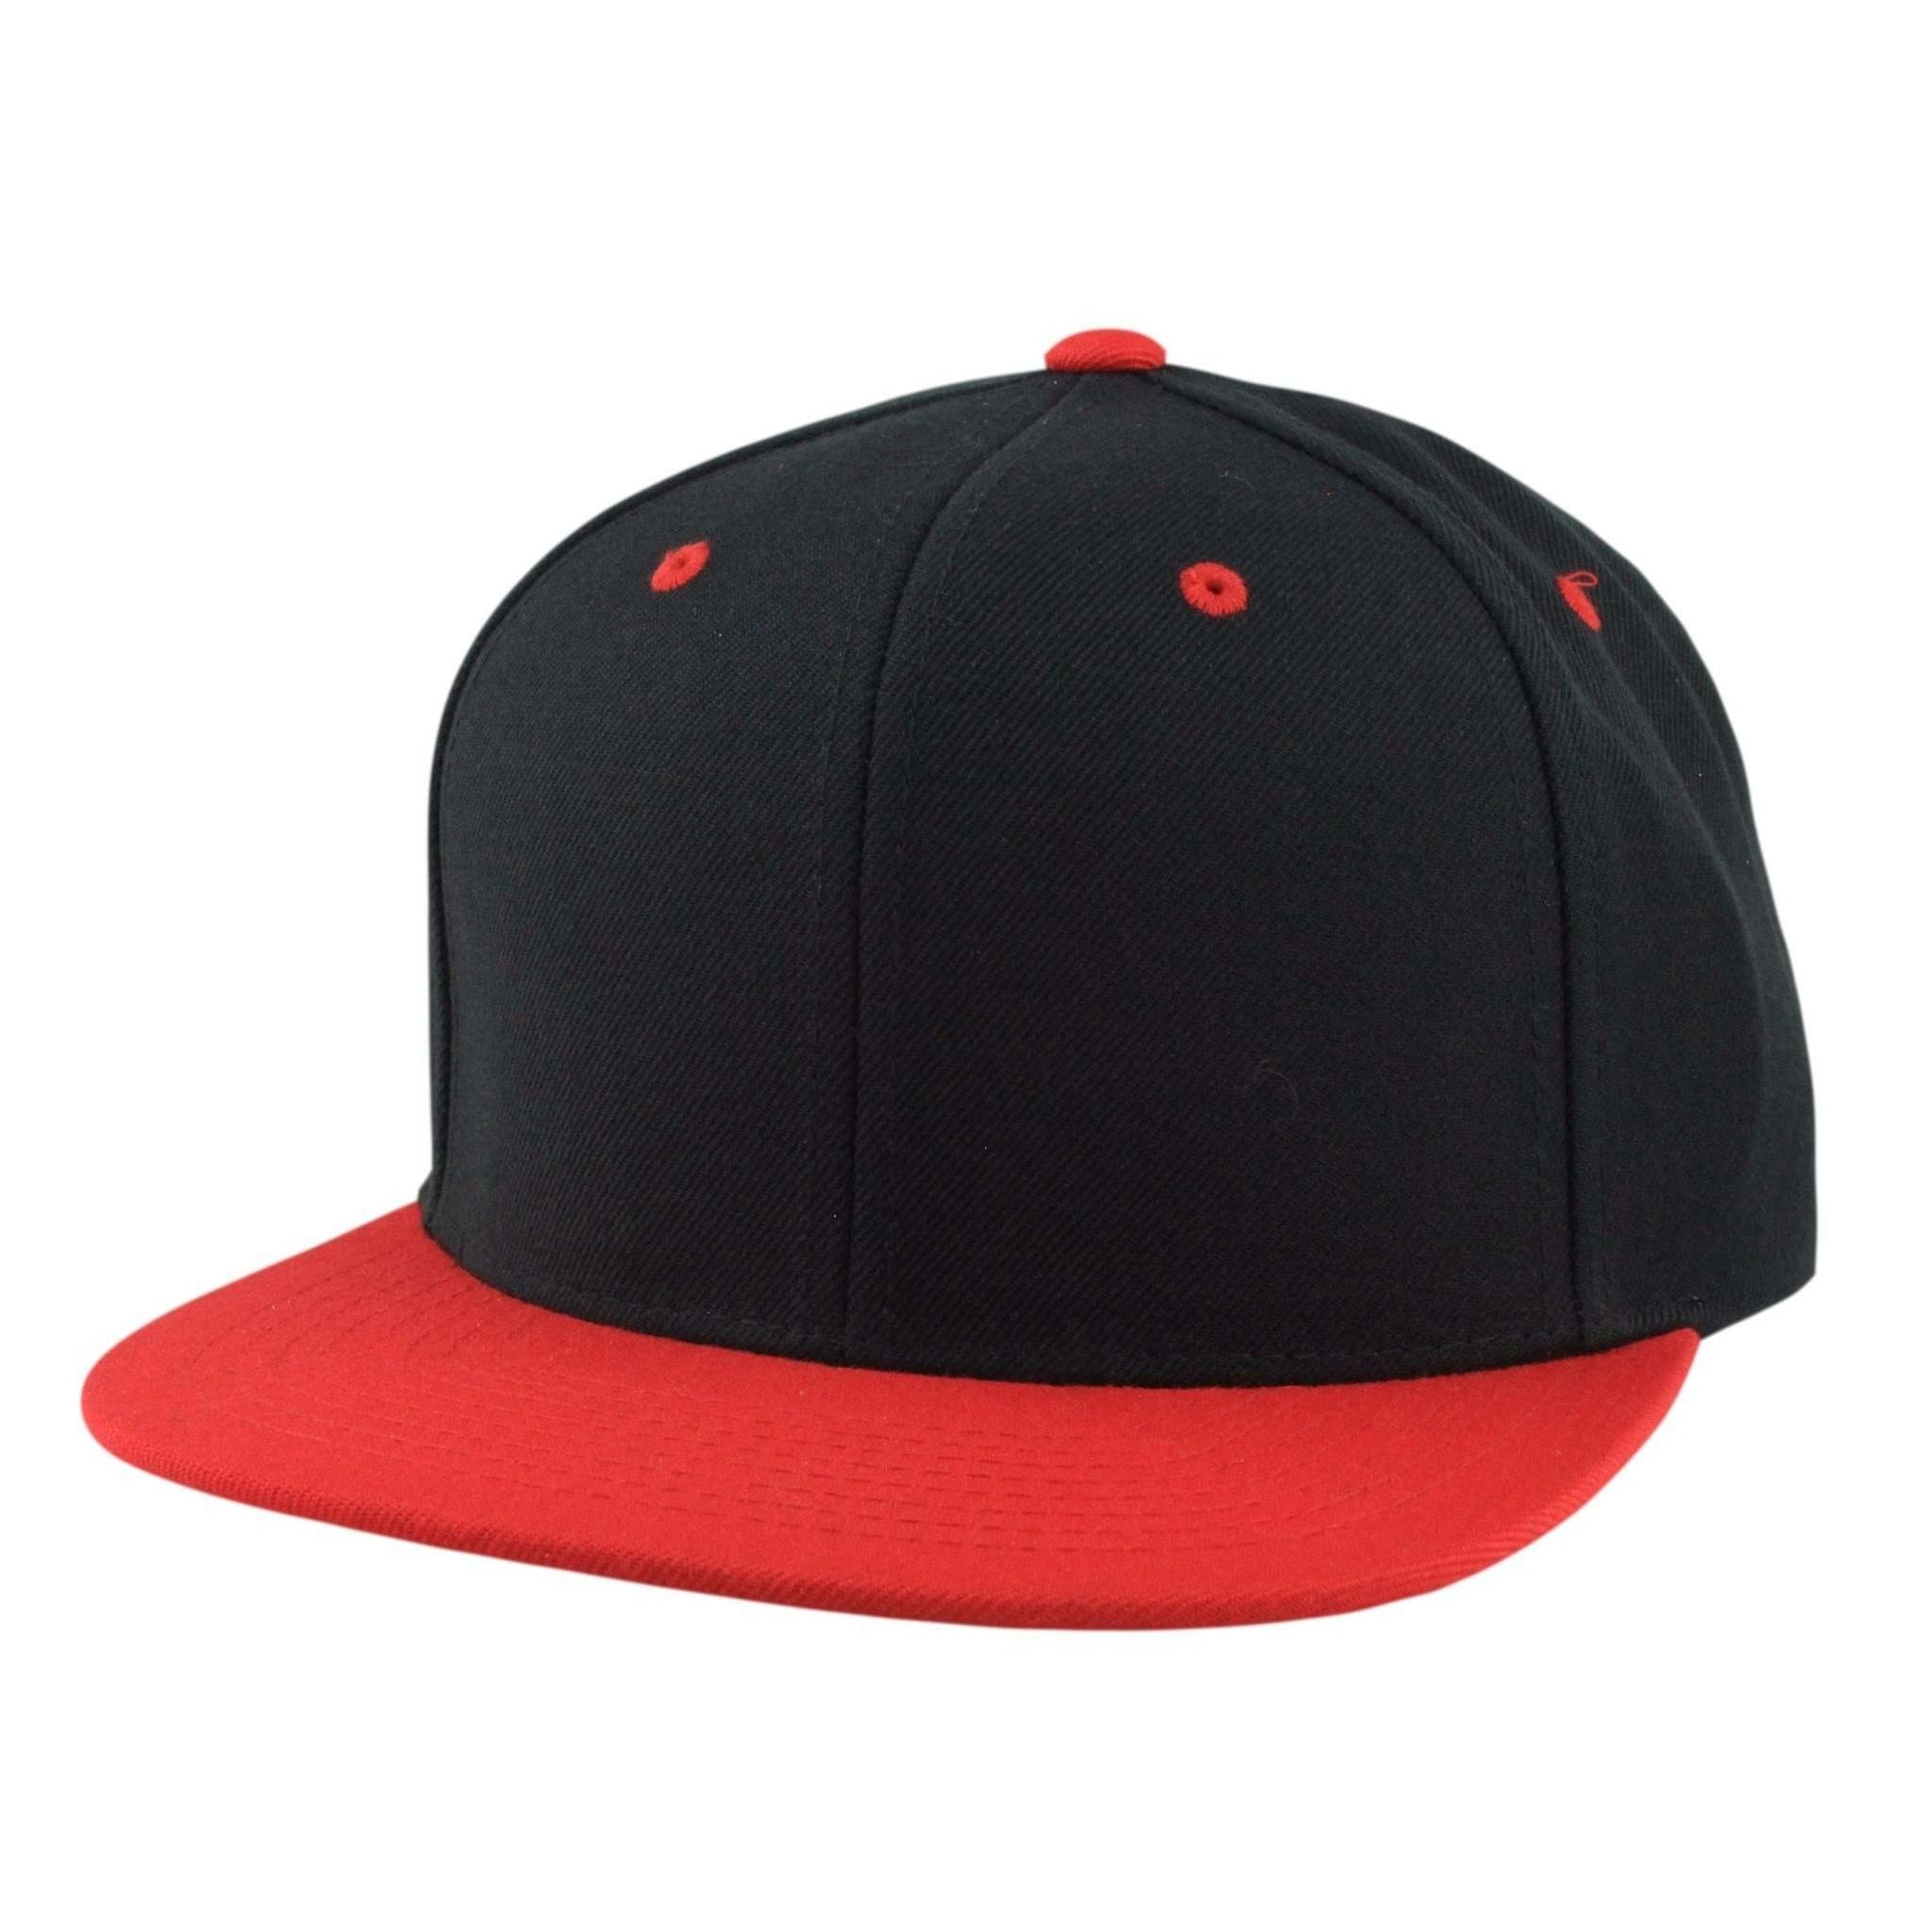 Flexfit Blank 6-Panel Black Red Snapback b8eda676a15